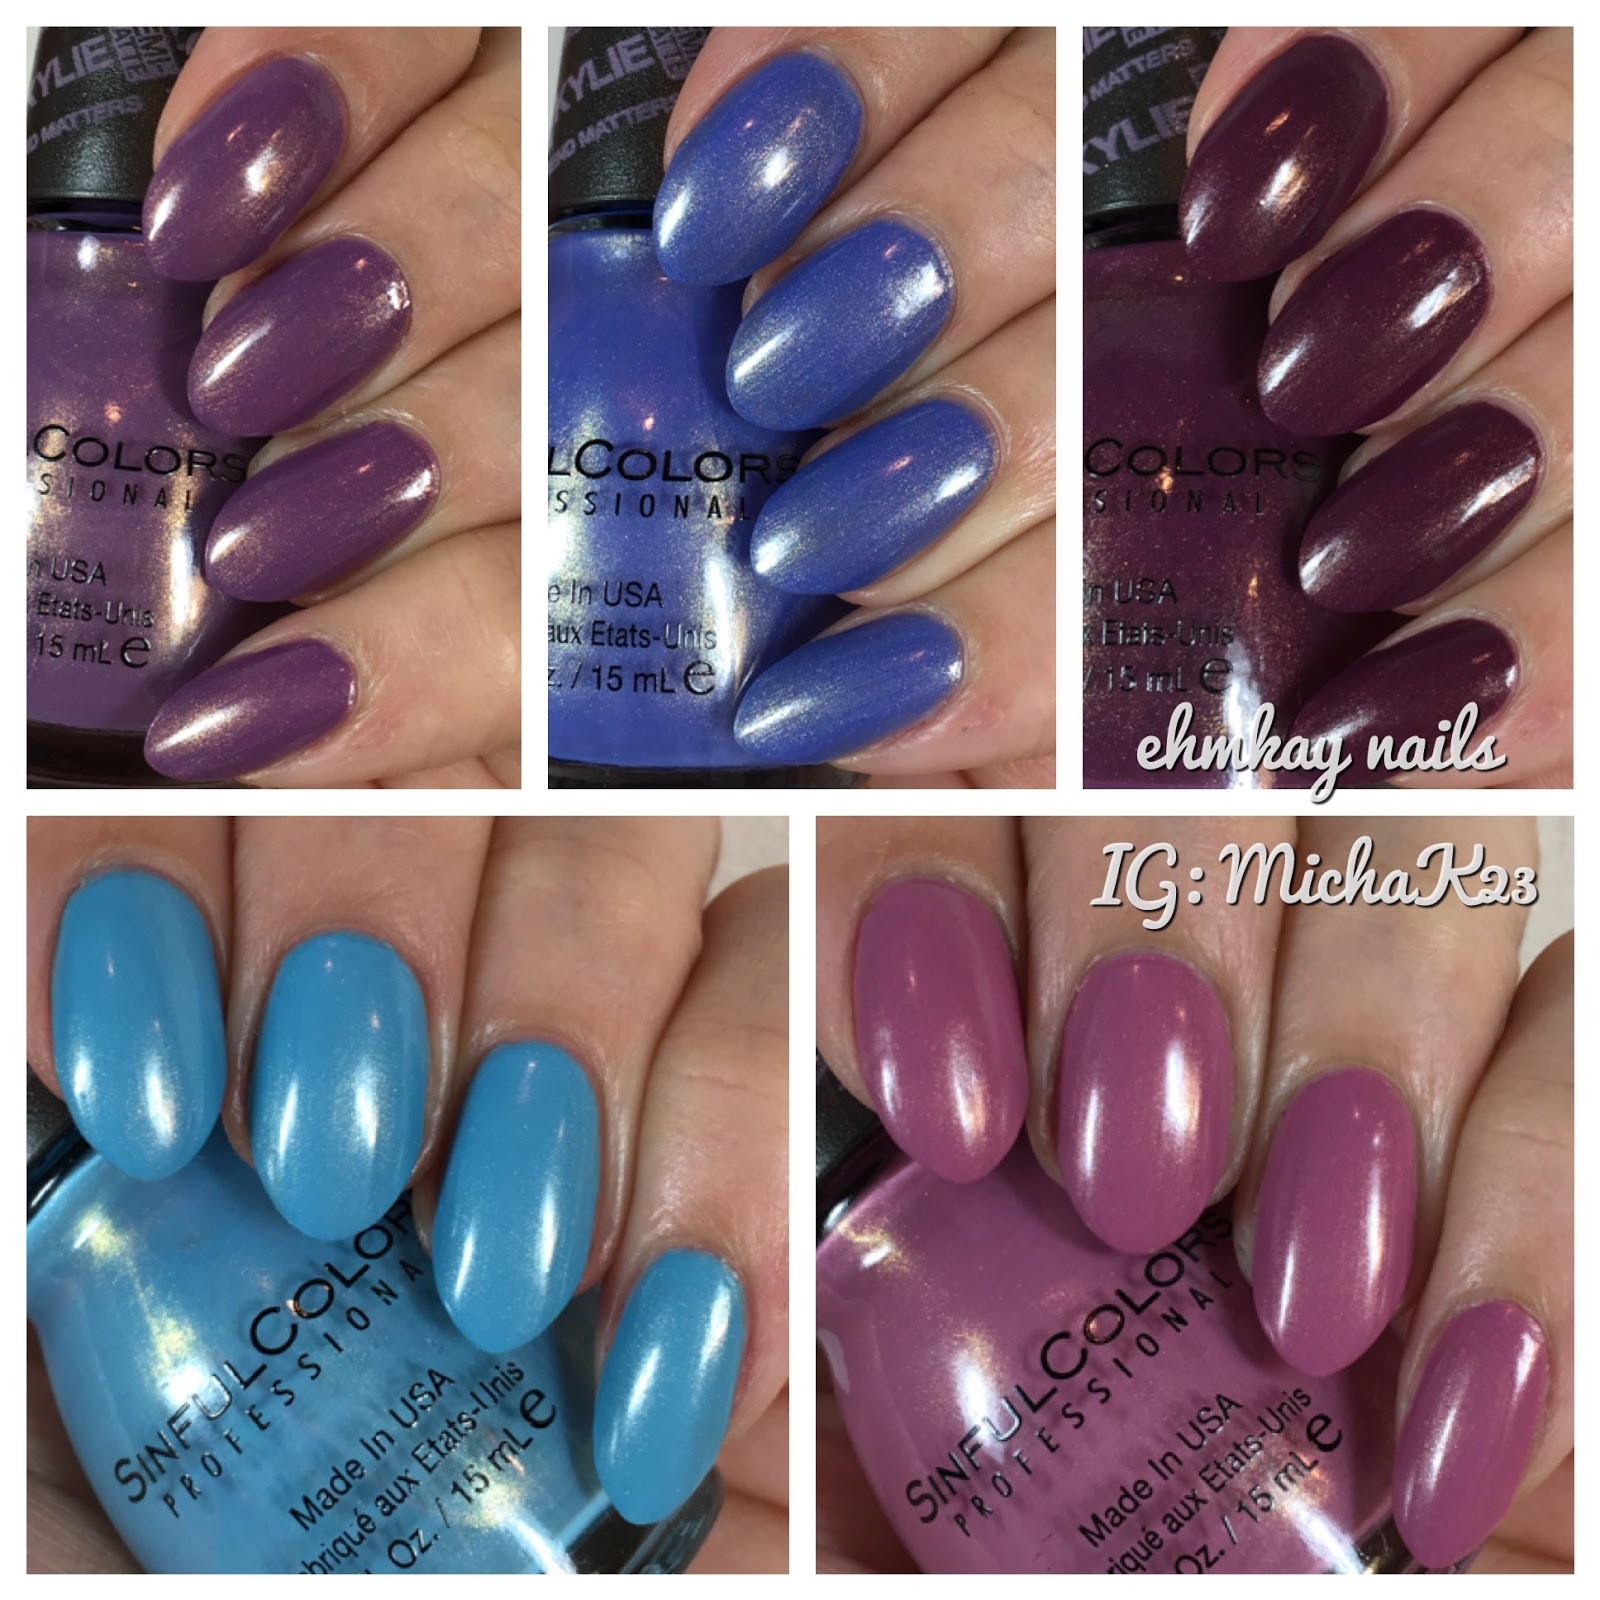 ehmkay nails: Sinful Colors Kylie Jenner: Trend Matters Velvety Demi ...